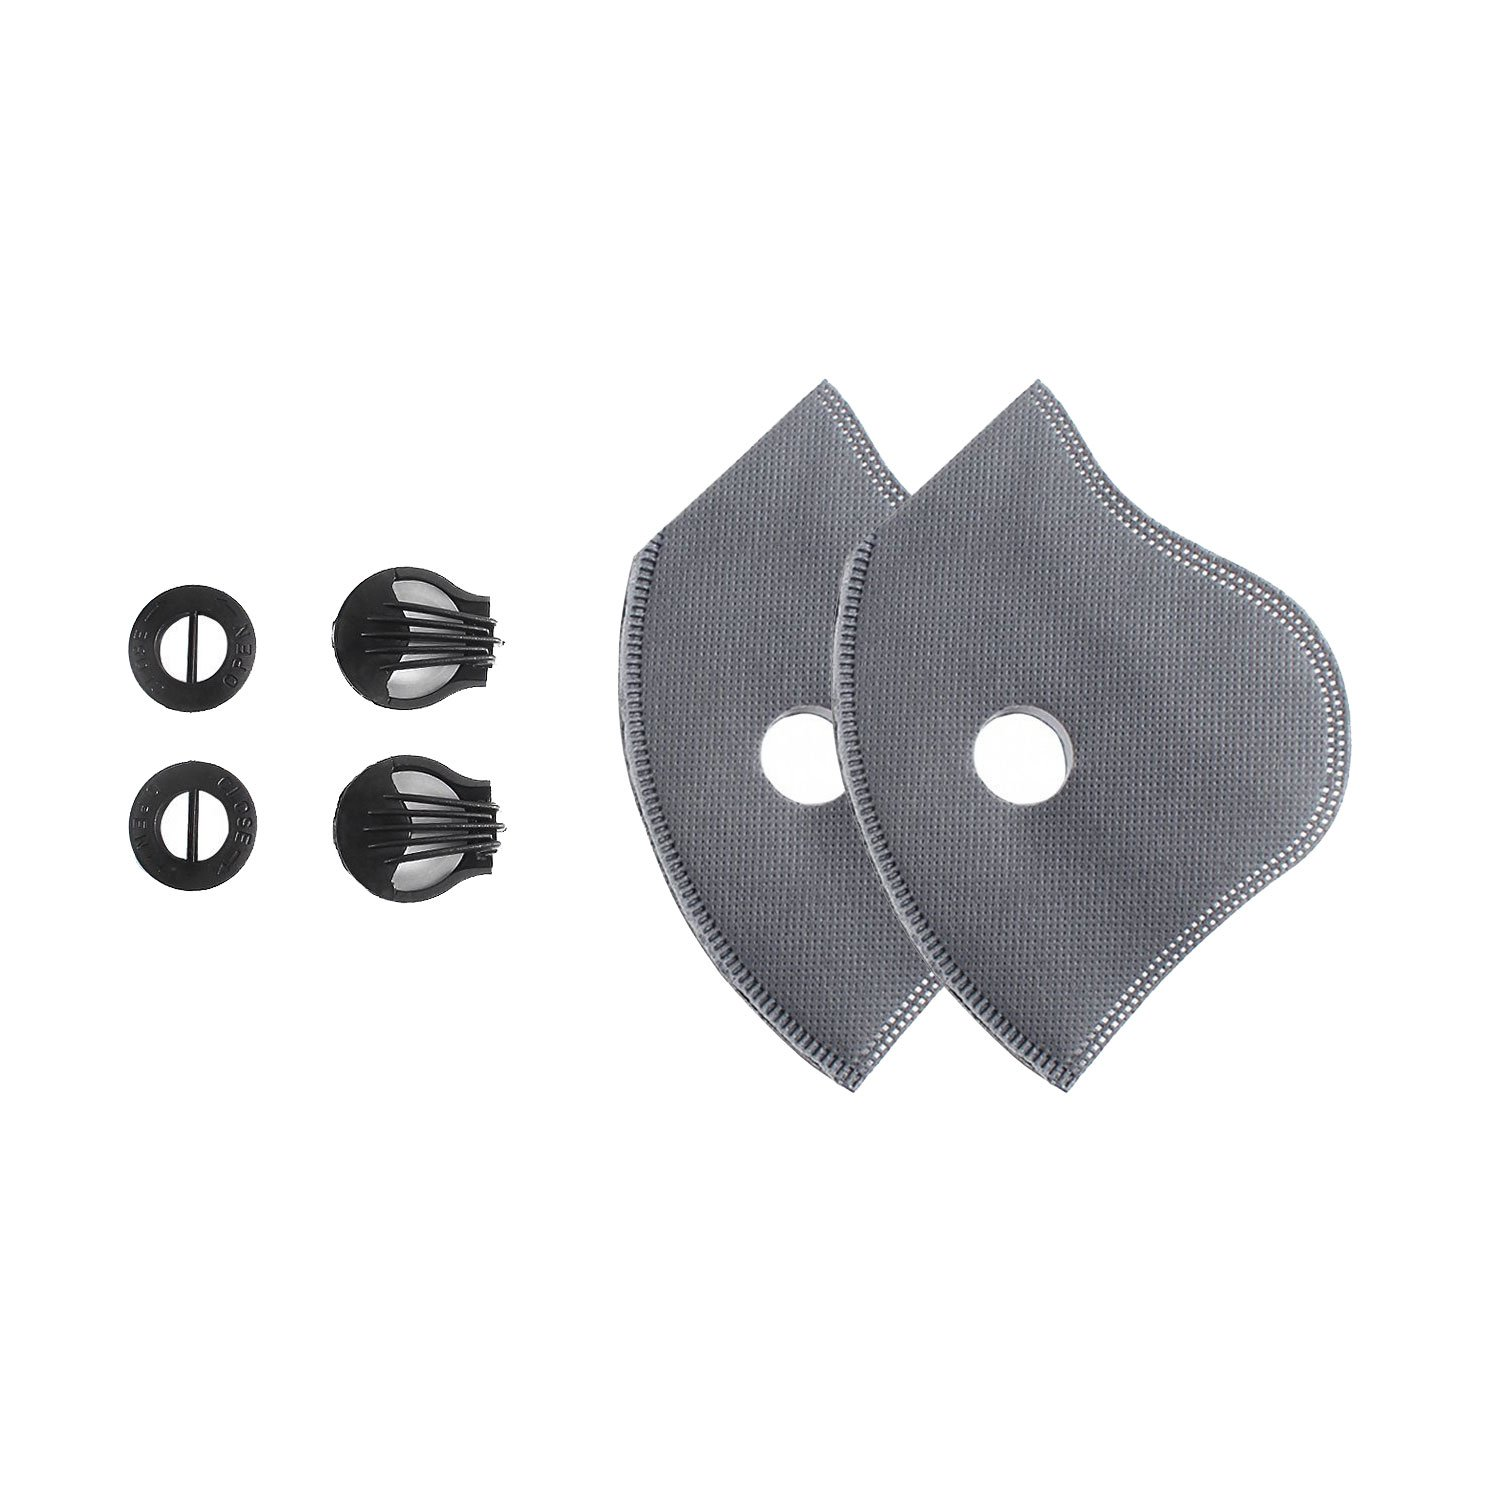 Activated Carbon Dust Mask Filter-Two Filter Two Air valve